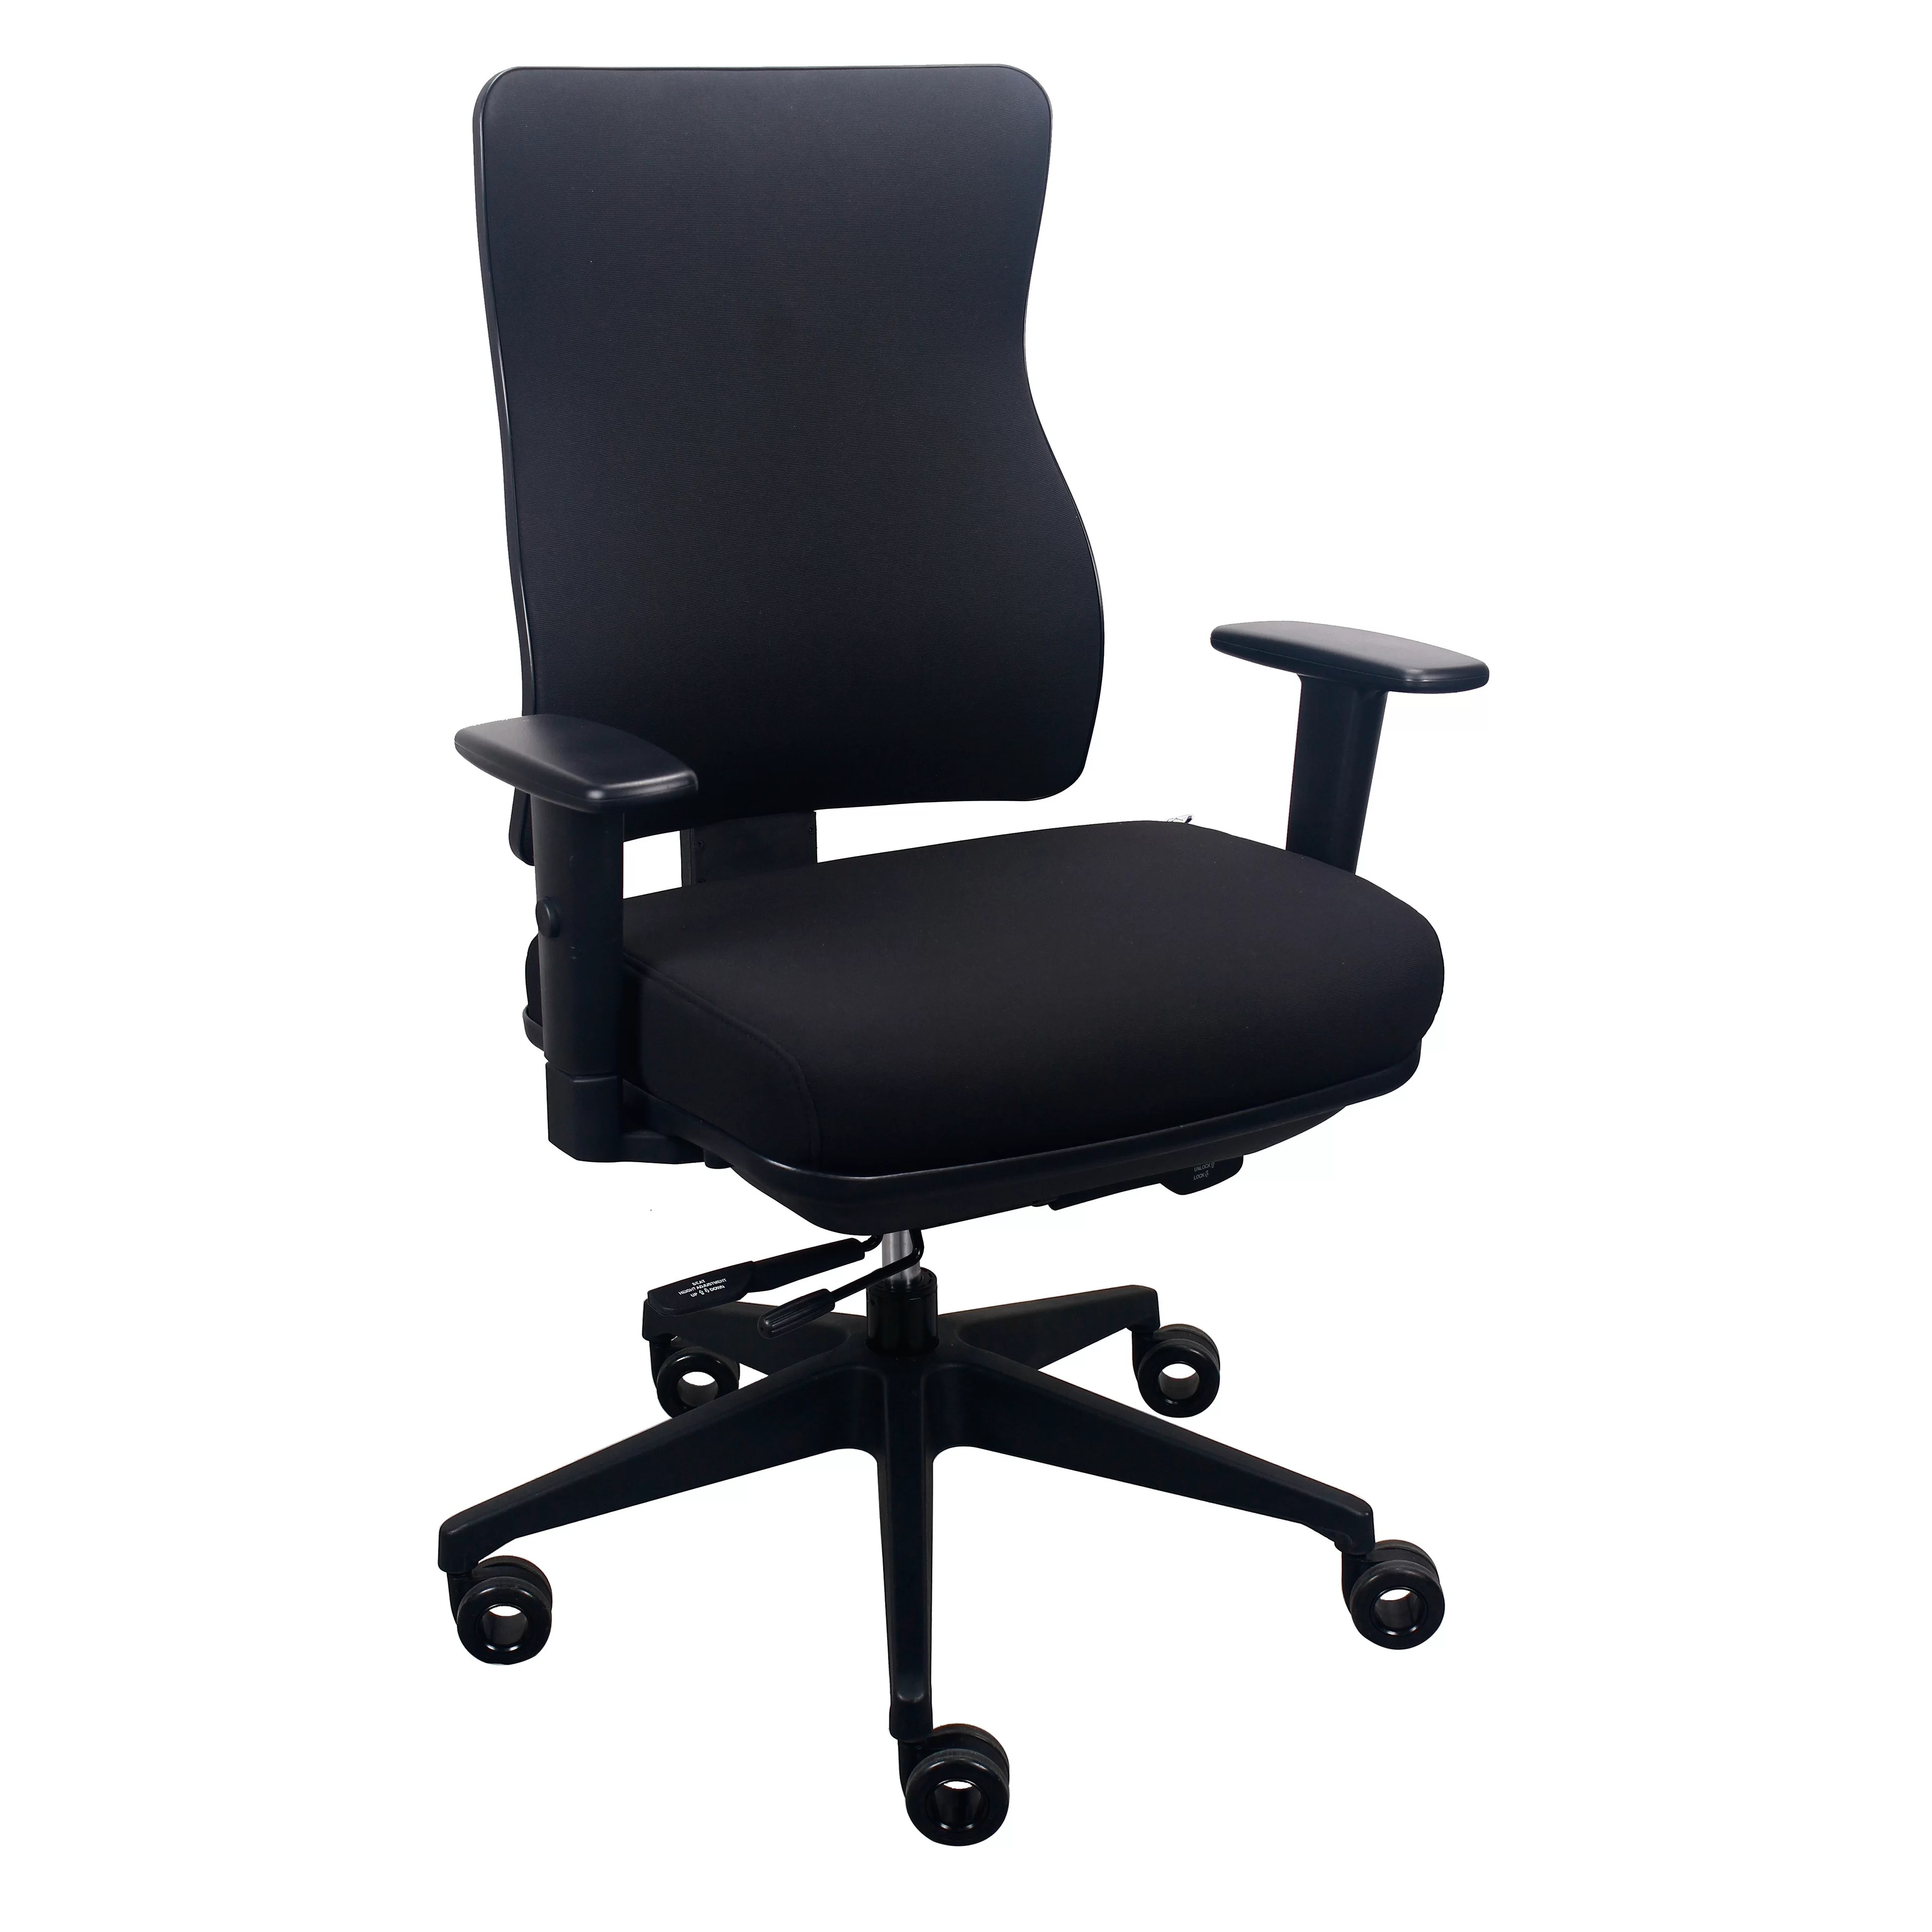 high back chairs with arms best geneva glider espresso wood granite tempur pedic executive office chair